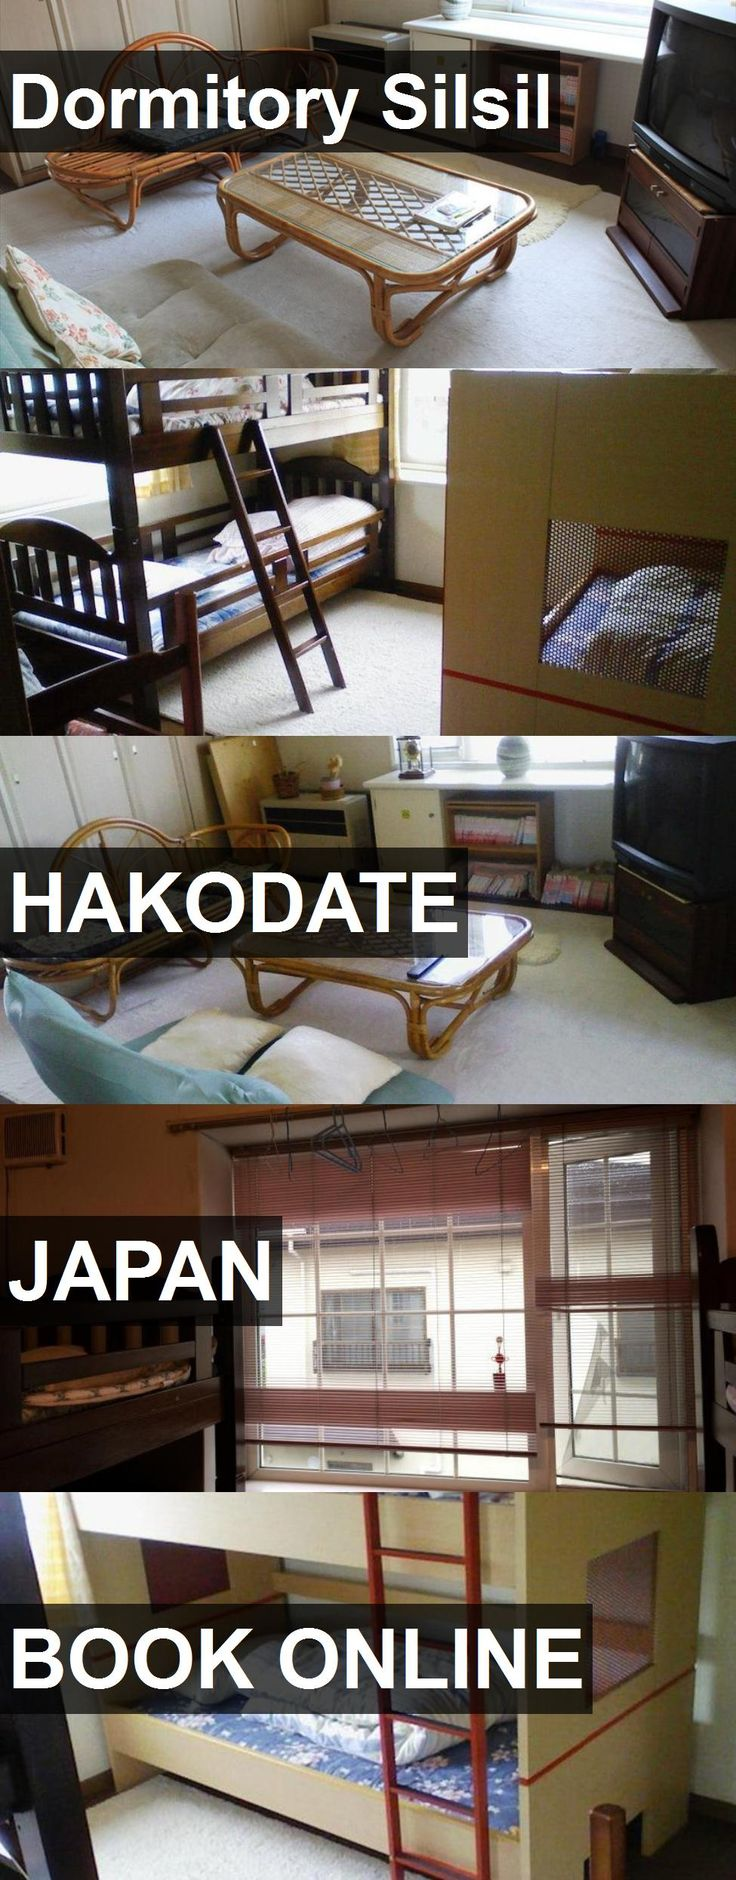 Hotel Dormitory Silsil in Hakodate, Japan. For more information, photos, reviews and best prices please follow the link. #Japan #Hakodate #travel #vacation #hotel